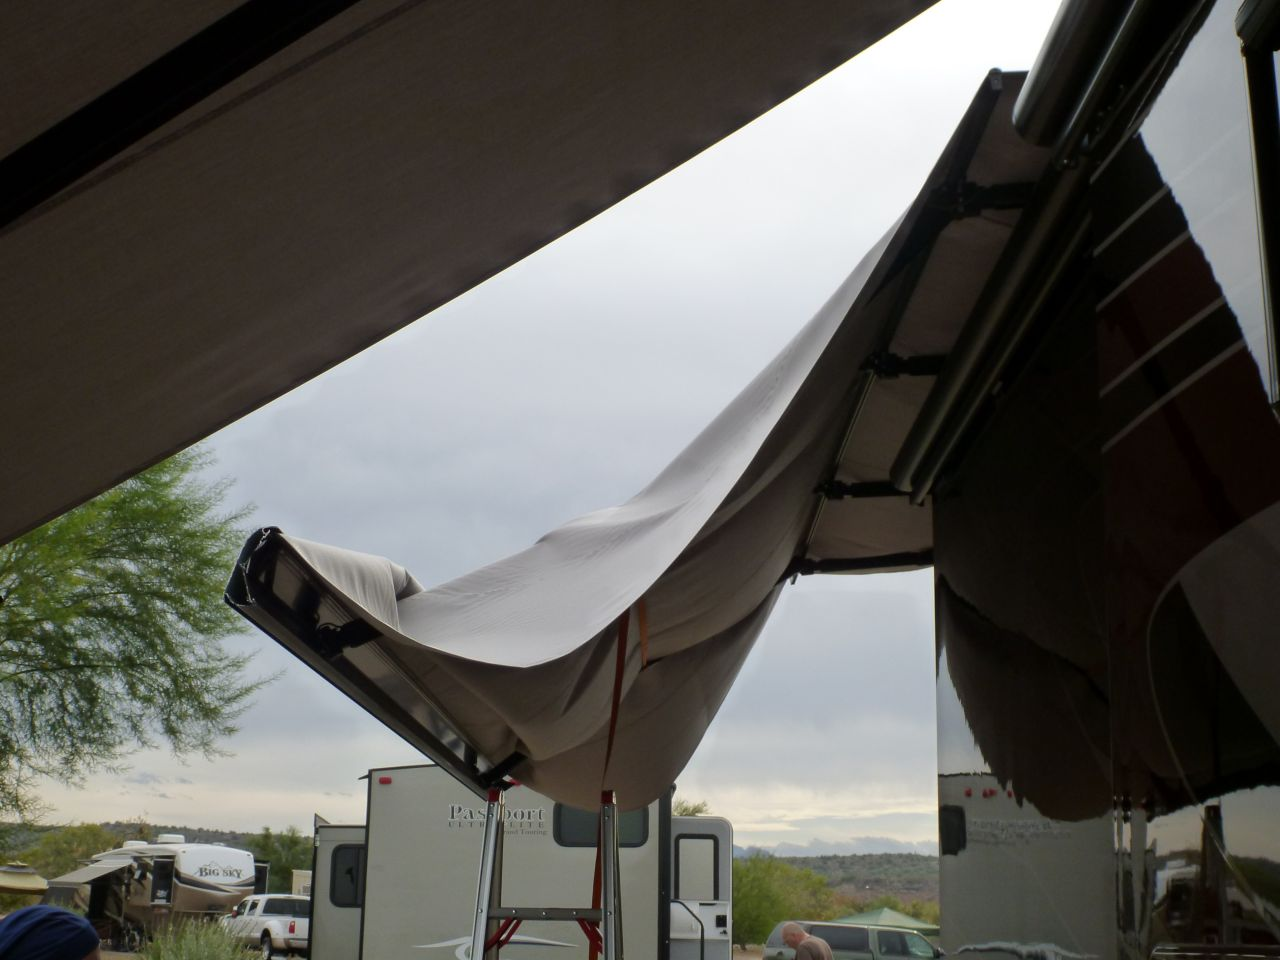 Replacing The Awning Fabric